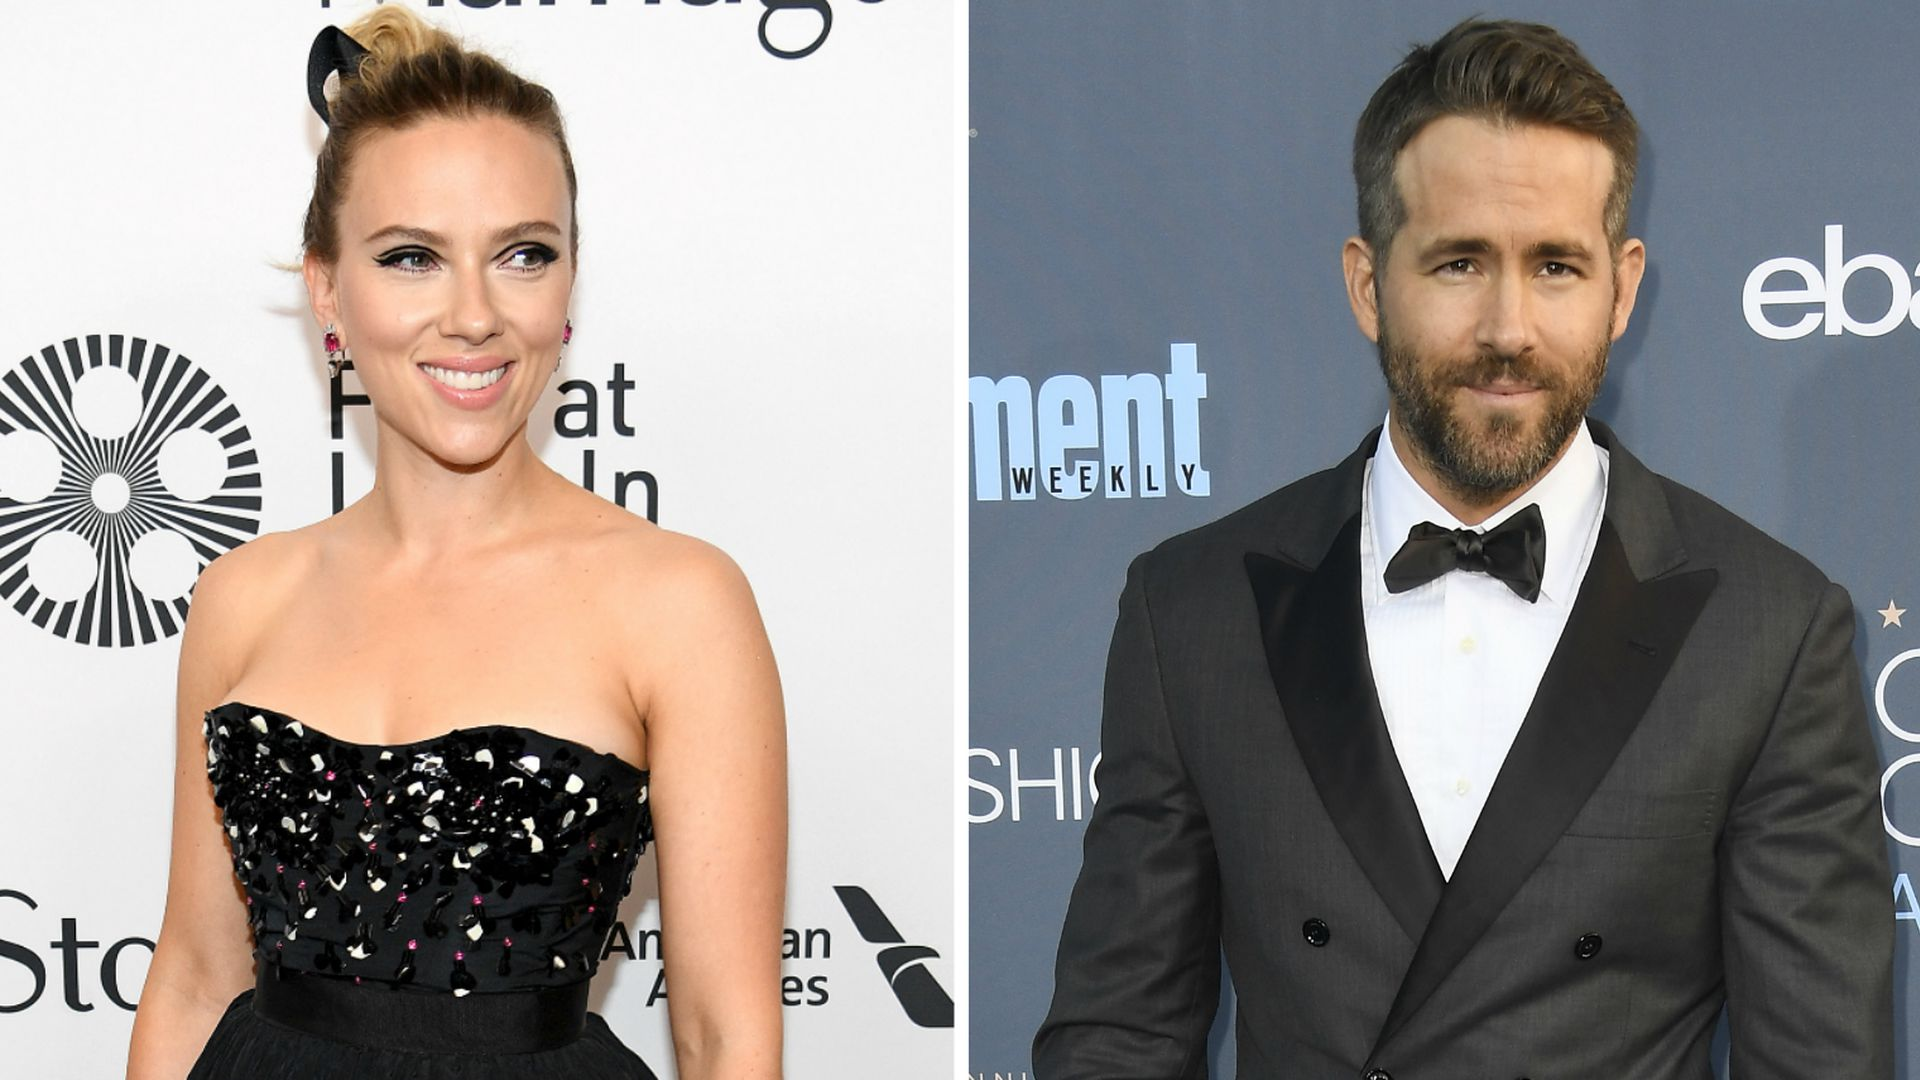 Ryan Reynolds is going back to Scarlett Johansson and leaving Blake Lively?